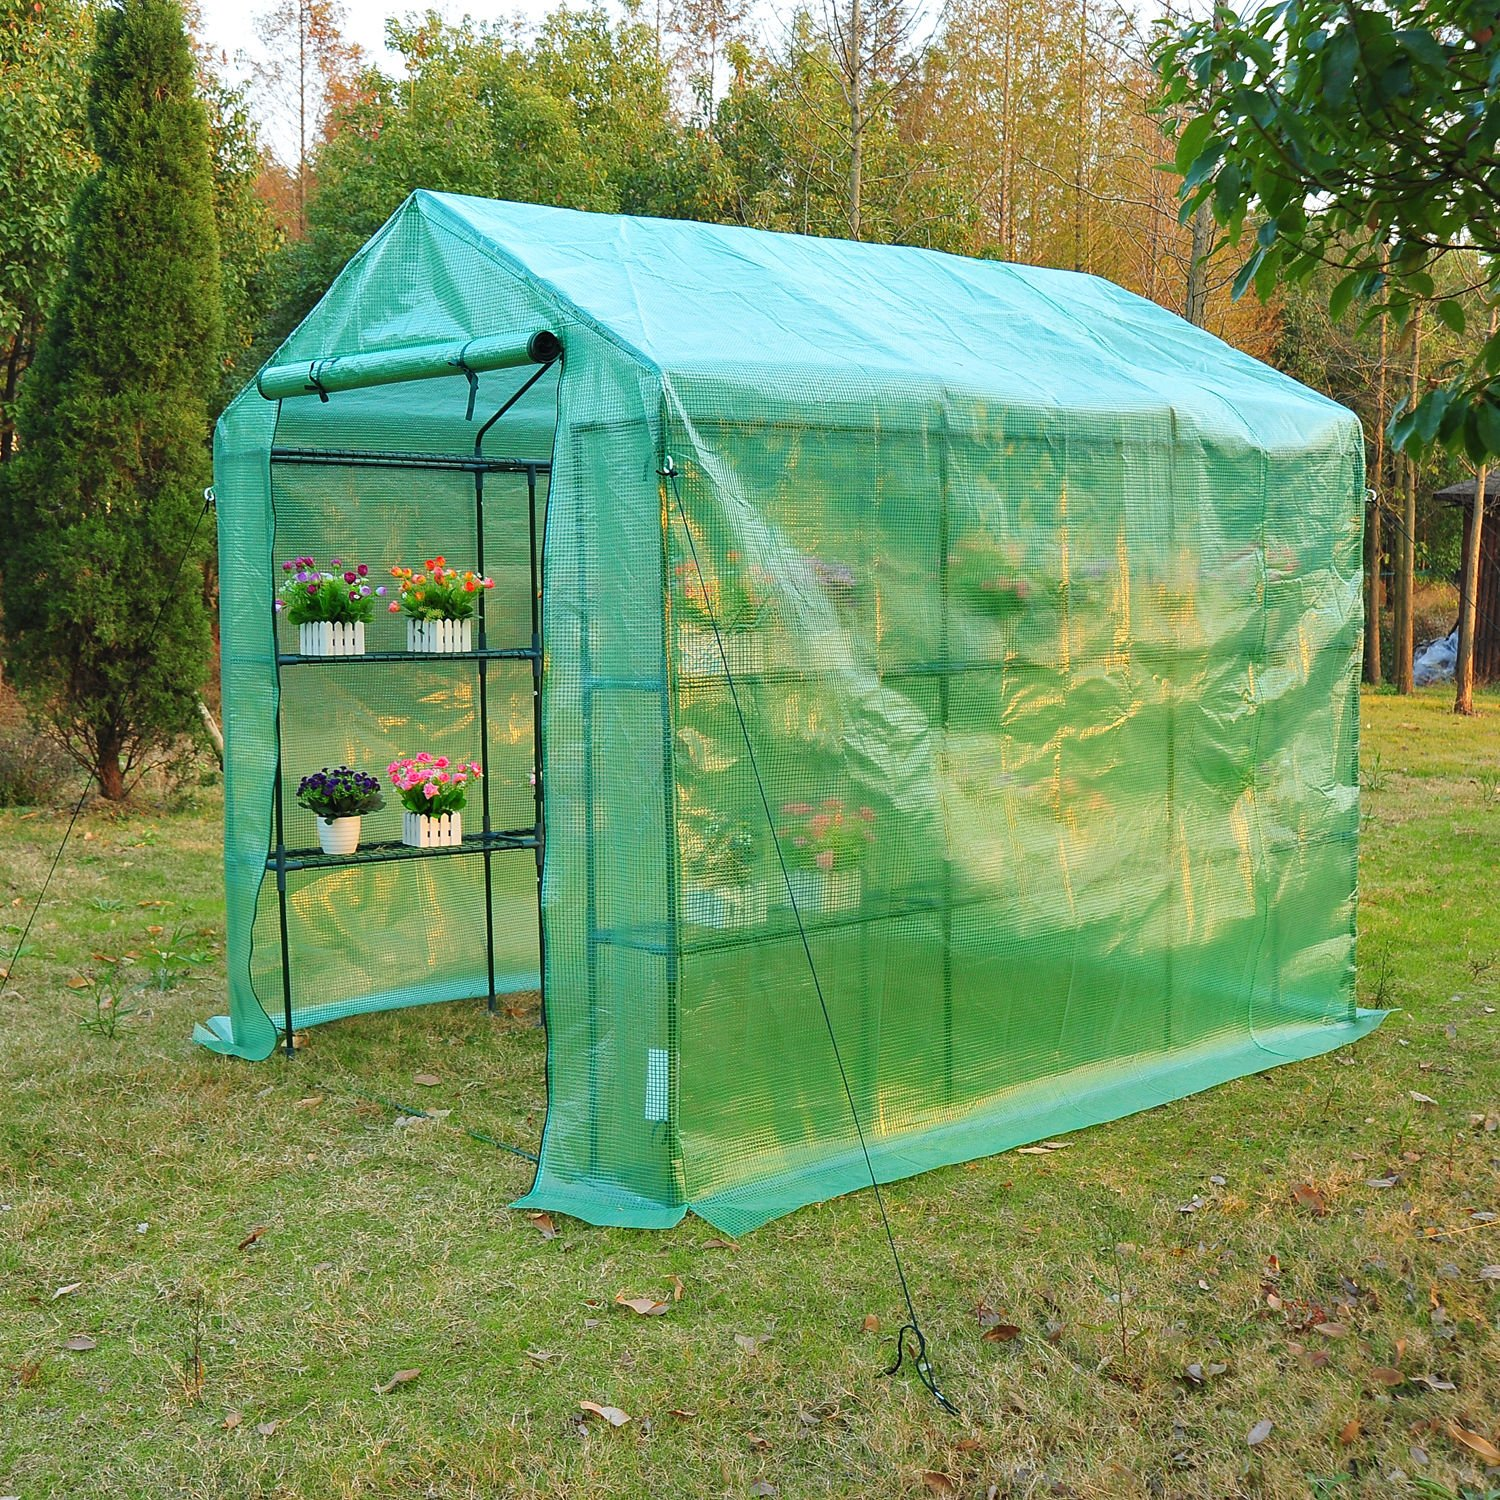 Outsunny 8' x 6' x 7' Outdoor Portable Walk-in Greenhouse by Outsunny (Image #5)